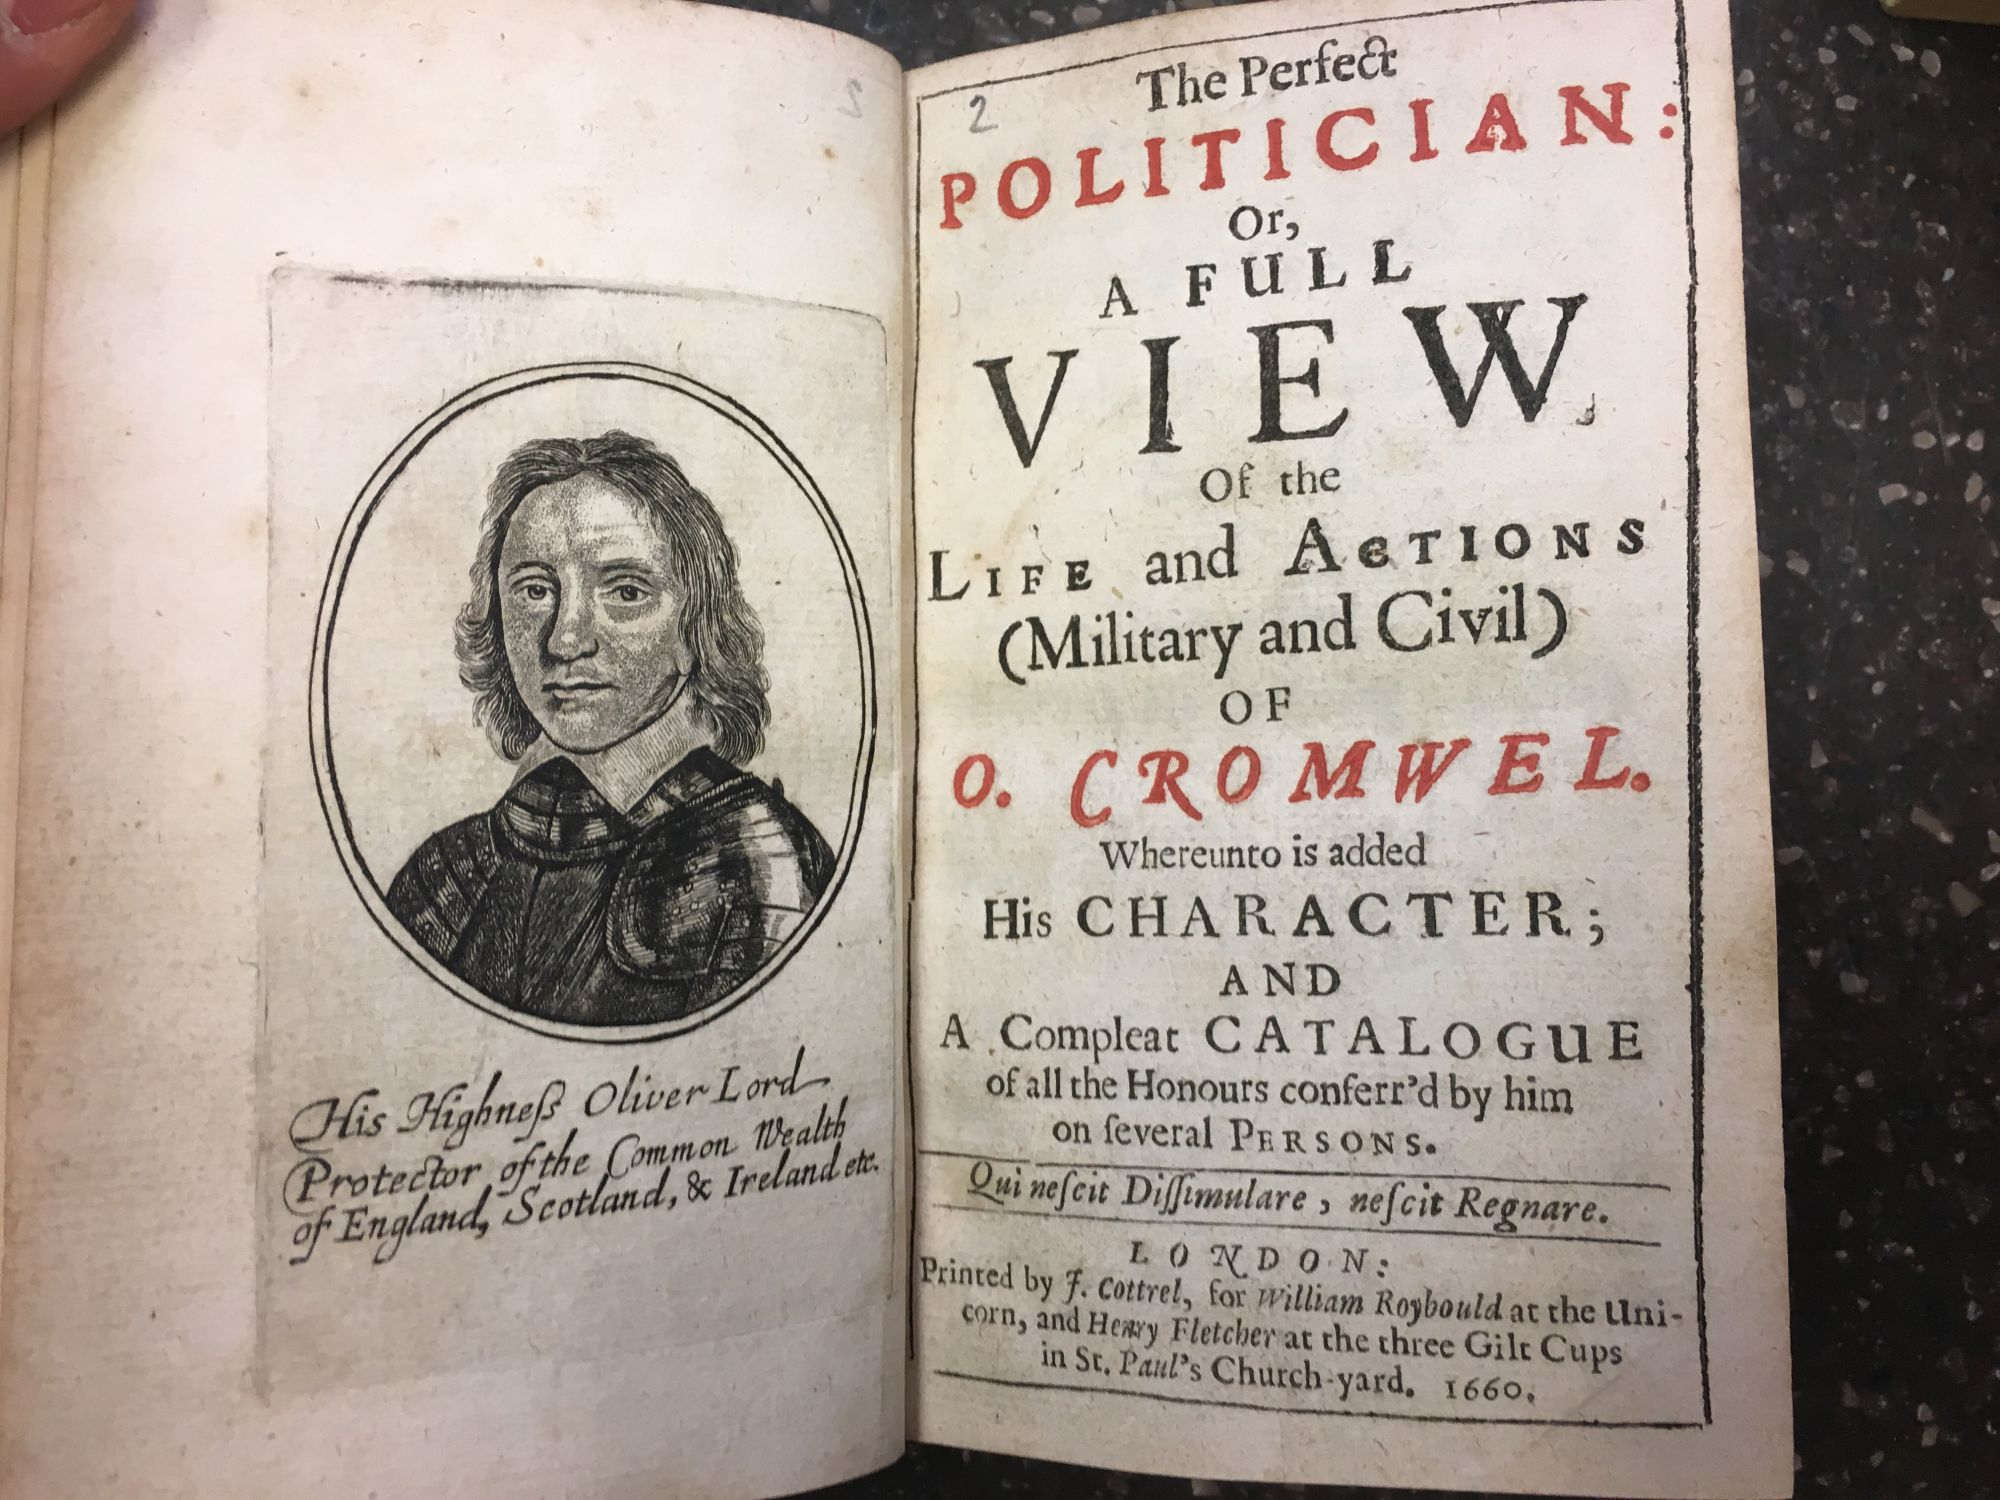 THE PERFECT POLITICIAN: OR, A FULL VIEW OF THE LIFE AND ACTIONS (MILITARY AND CIVIL) OF O. CROMWEL. Henry Fletcher.